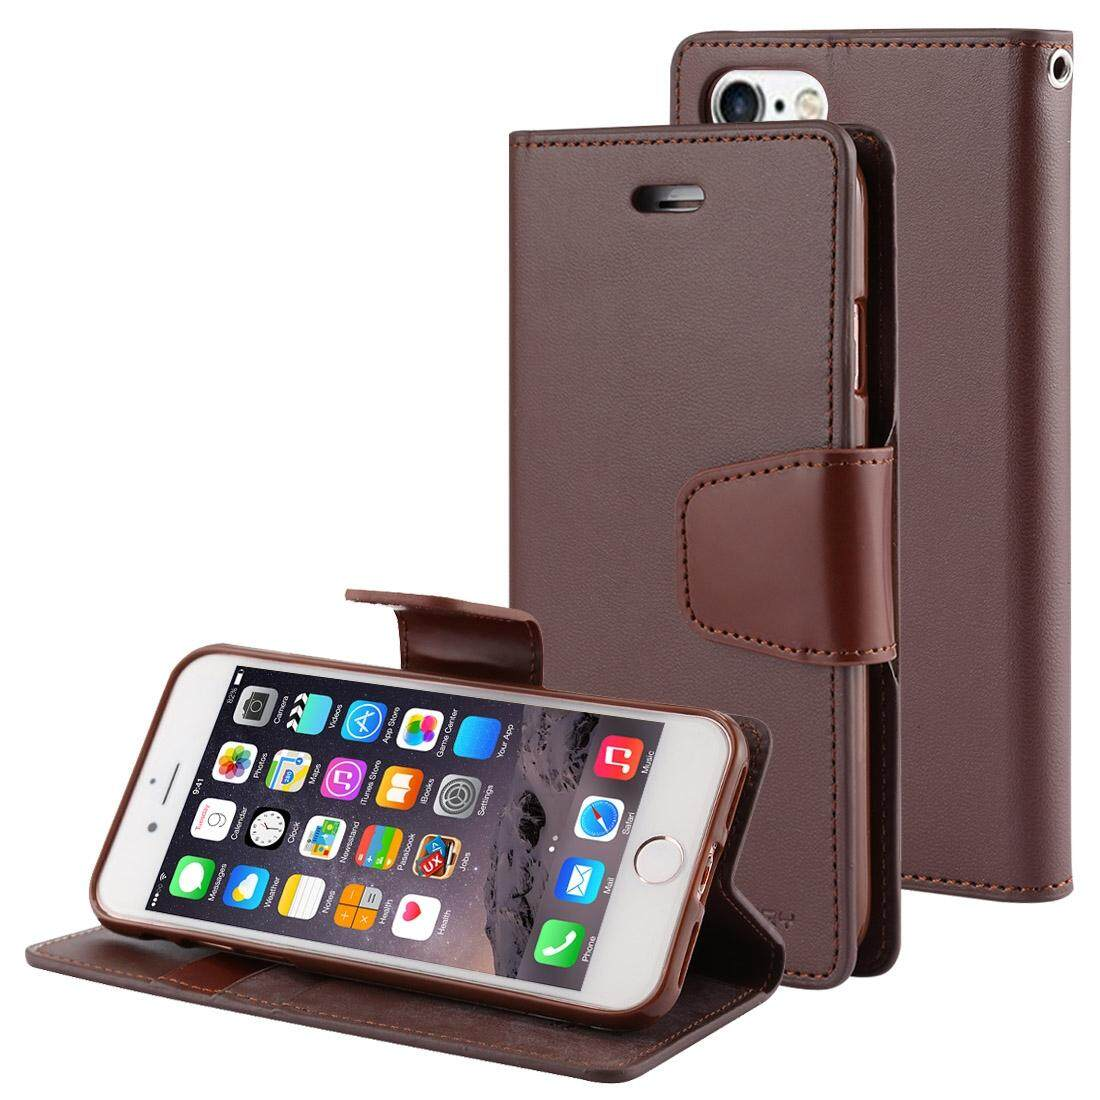 Features Mercury Goospery Fancy Diary Leather Wallet Stand Case For Samsung Note 5 Bravo Gold Sonata Series Iphone 6 6s Simulation Skin Horizontal Flip